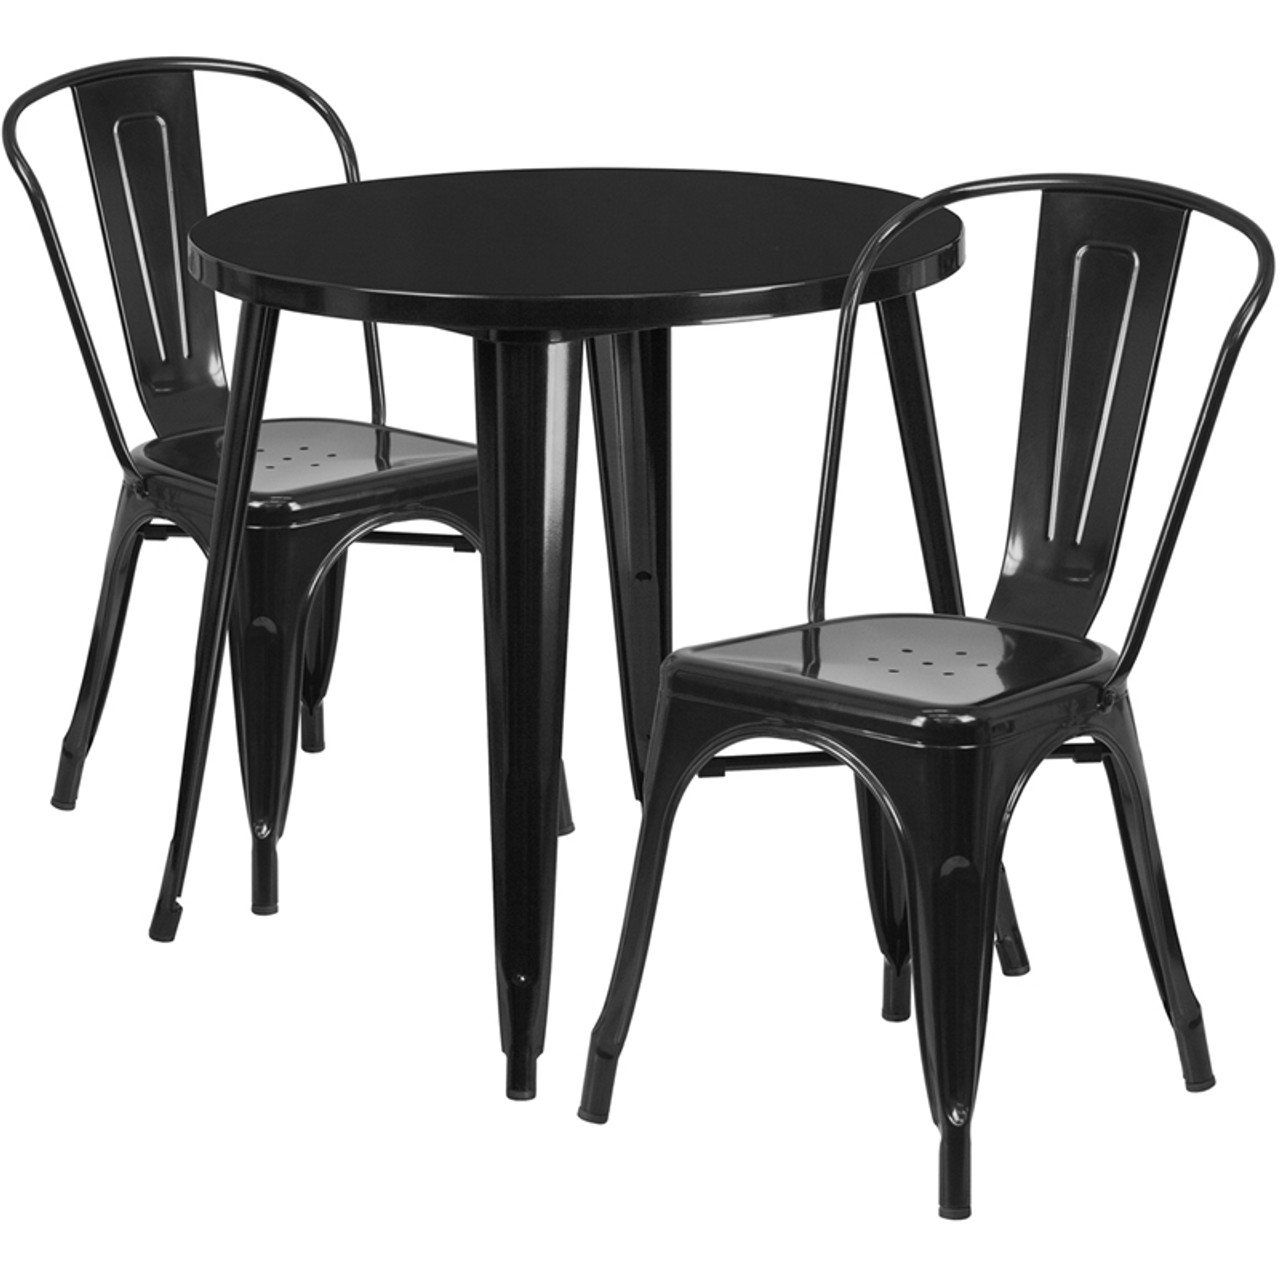 30 Round Black Metal Indoor Outdoor Table Set With 2 Cafe Chairs